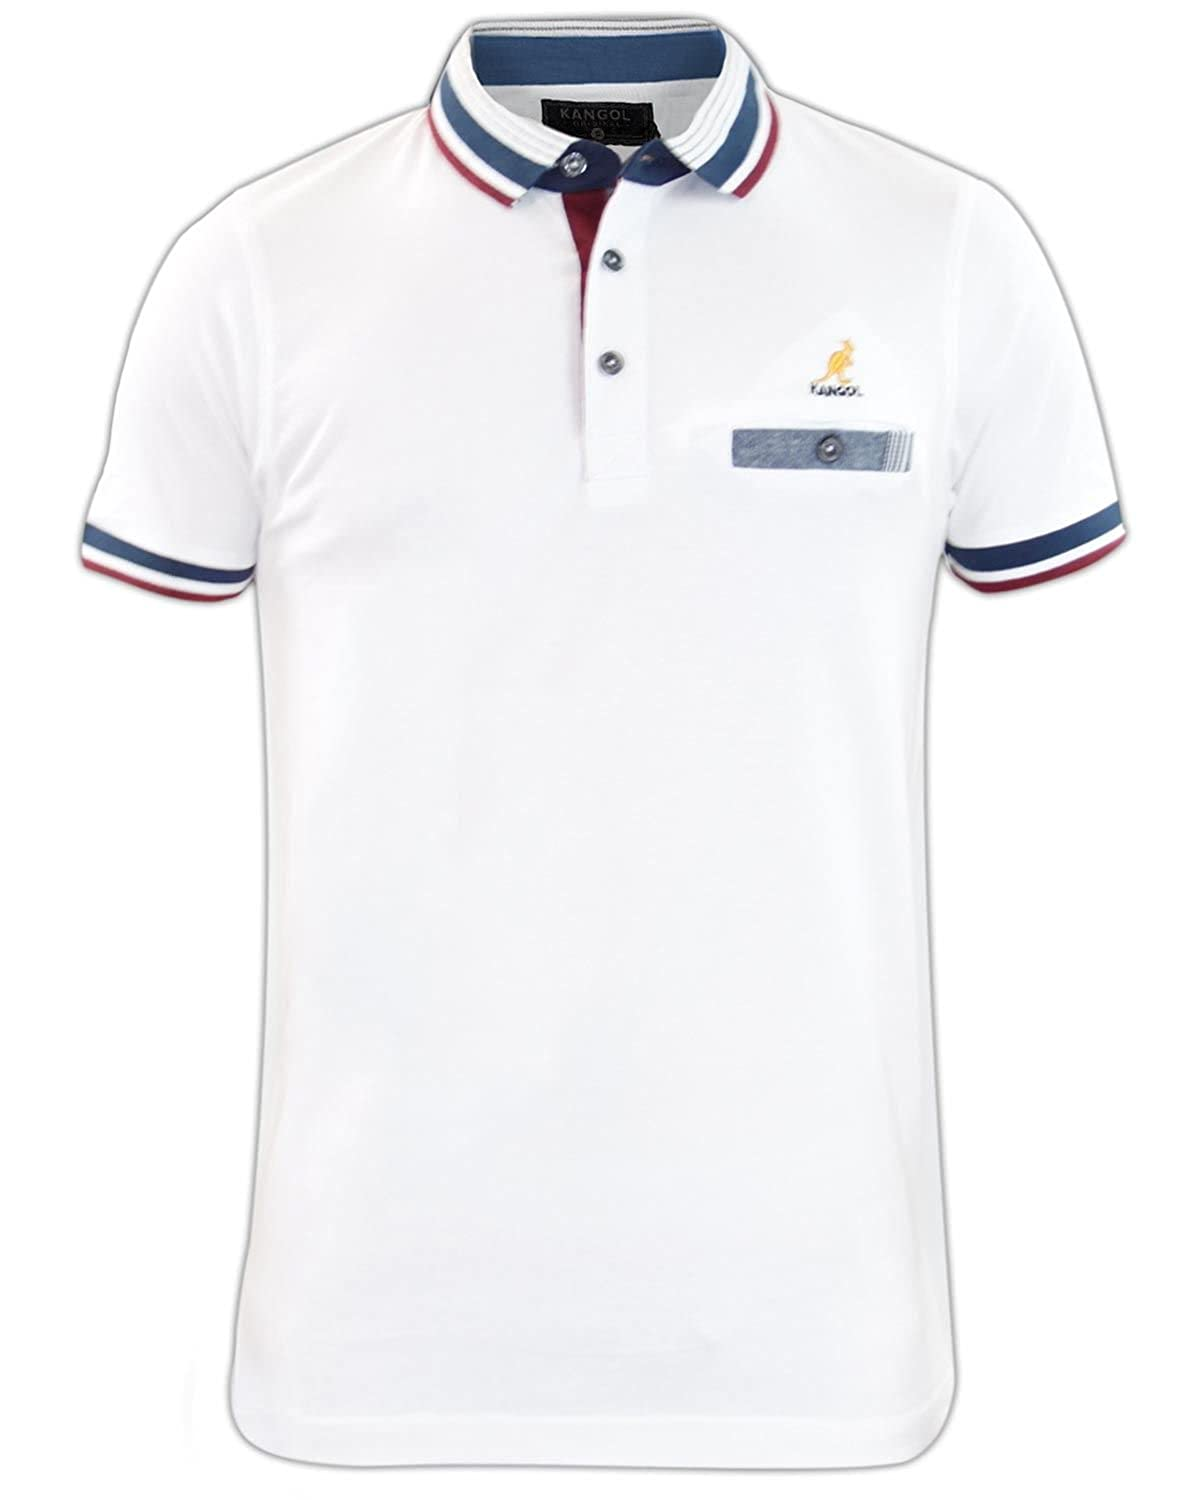 d04d9506 Kangol Mens Polo Shirt Button Up Collared T-shirt Designer Top Sizes S-XL:  Amazon.co.uk: Clothing